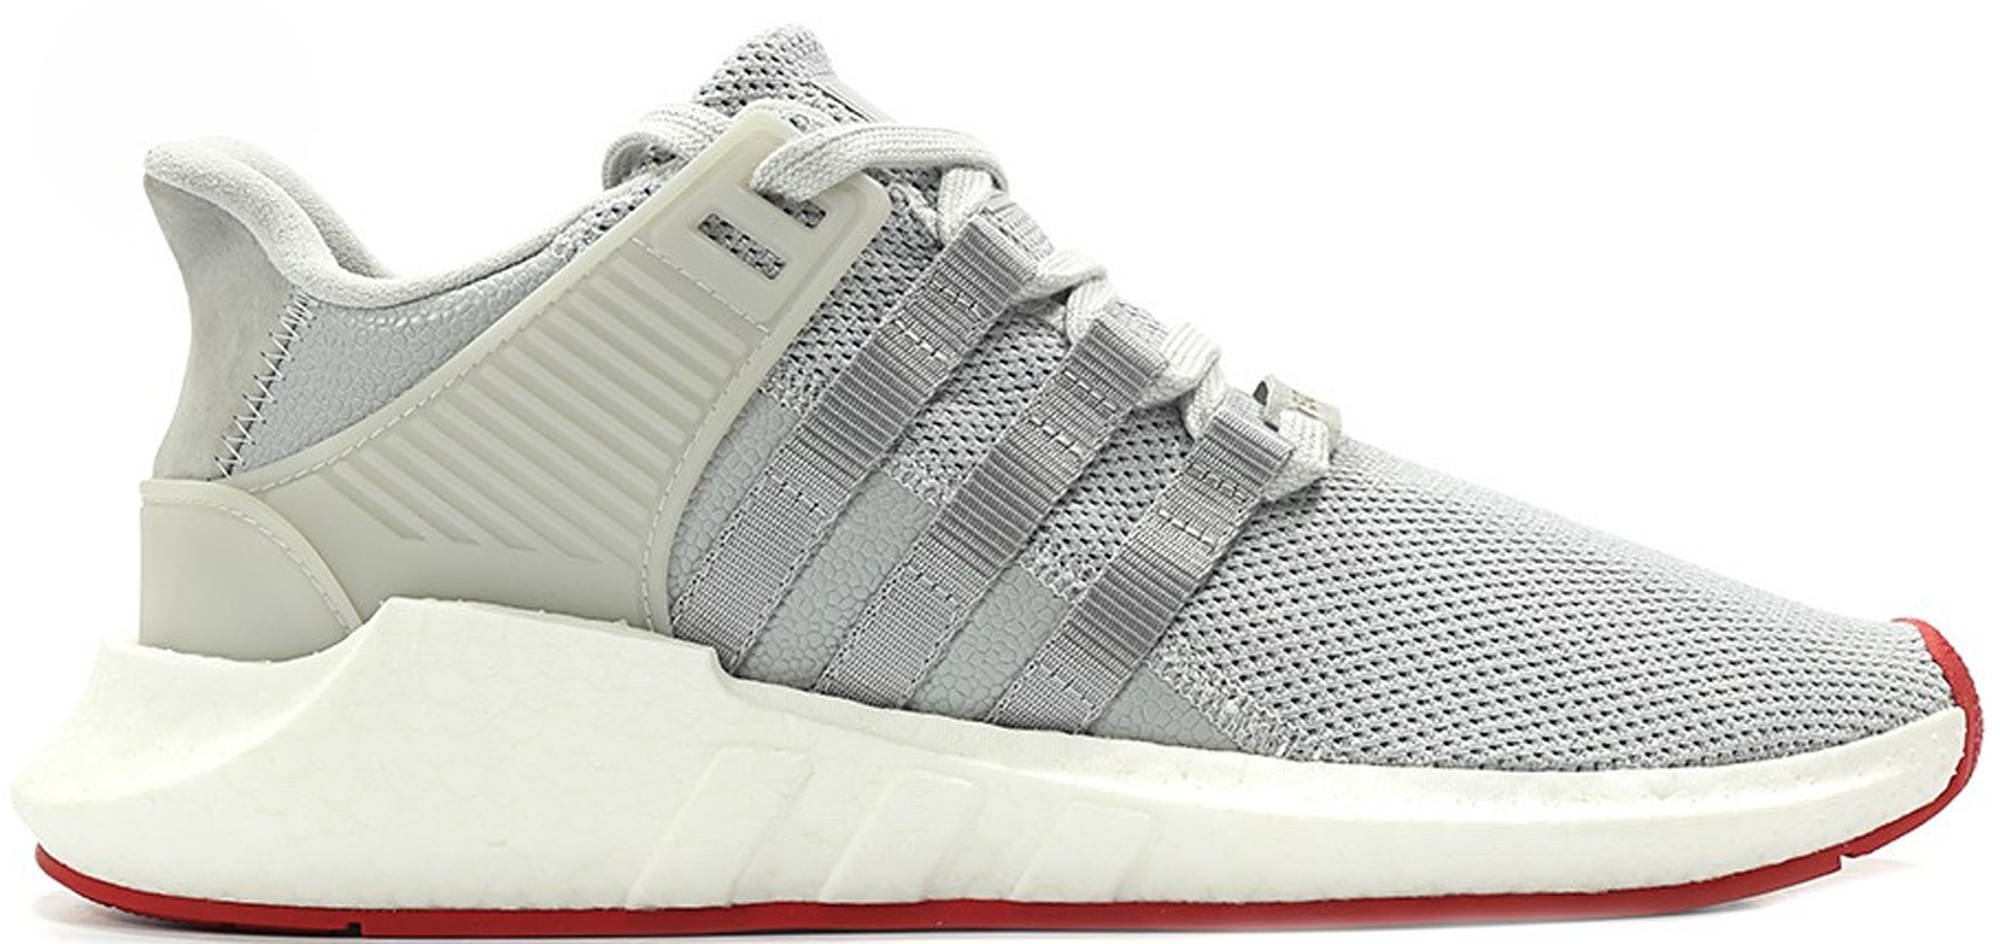 adidas EQT Support 93/17 Red Carpet Pack Grey